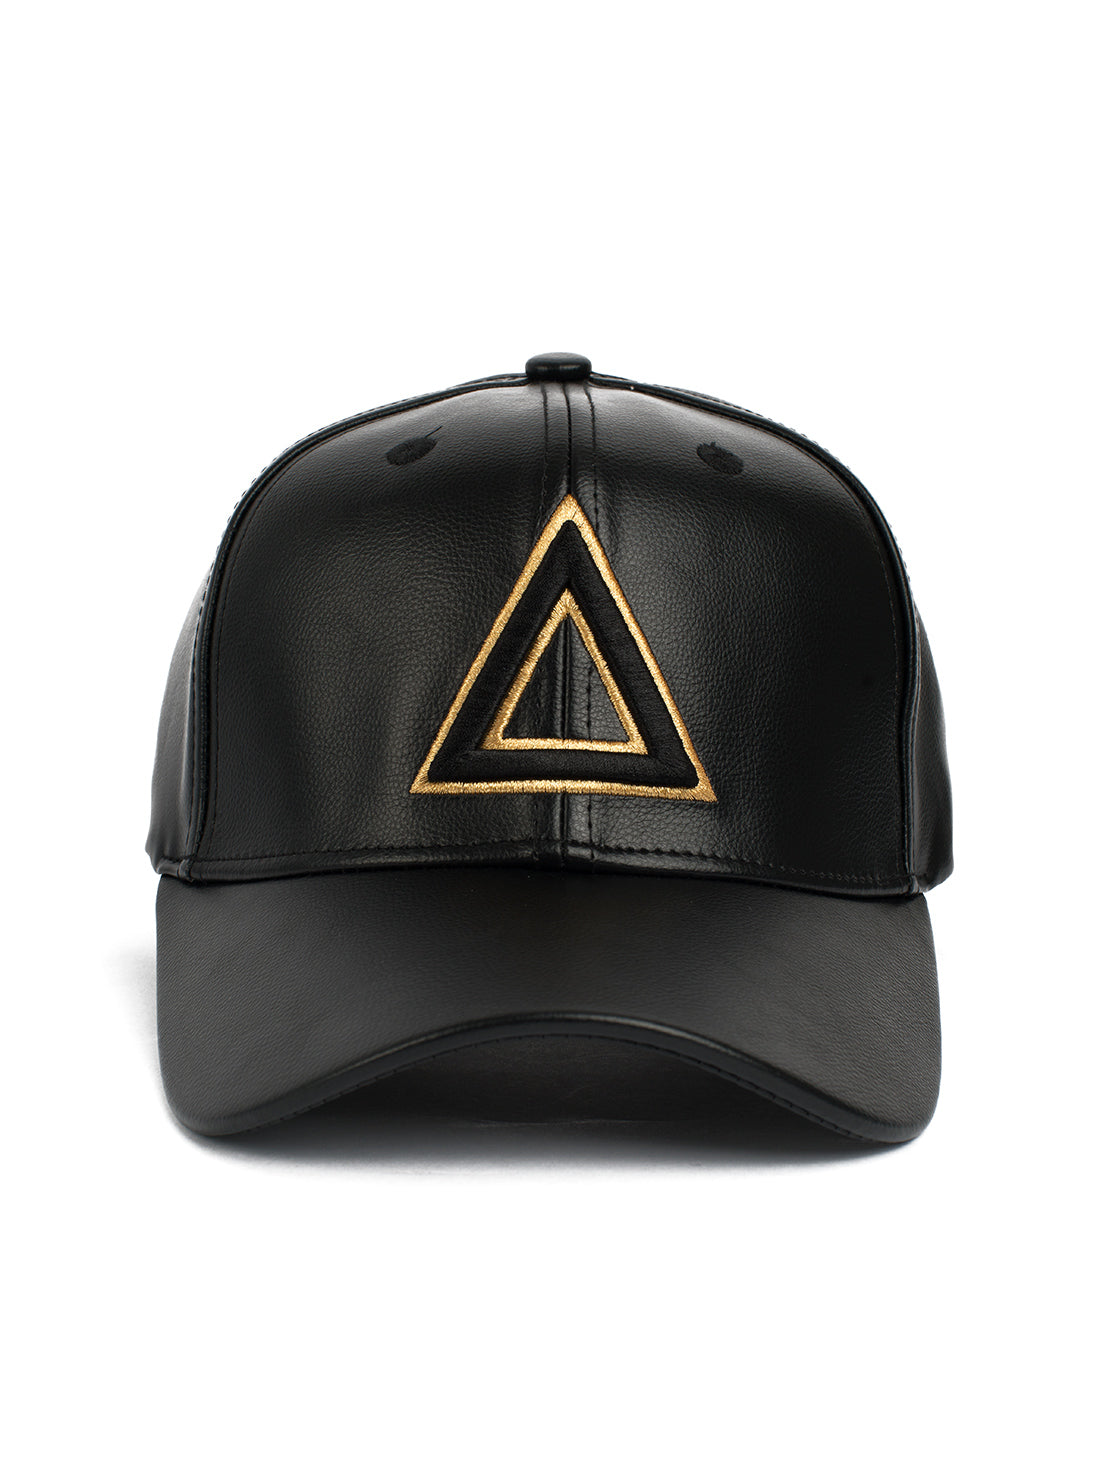 Leather Dad hat Black - gold tri